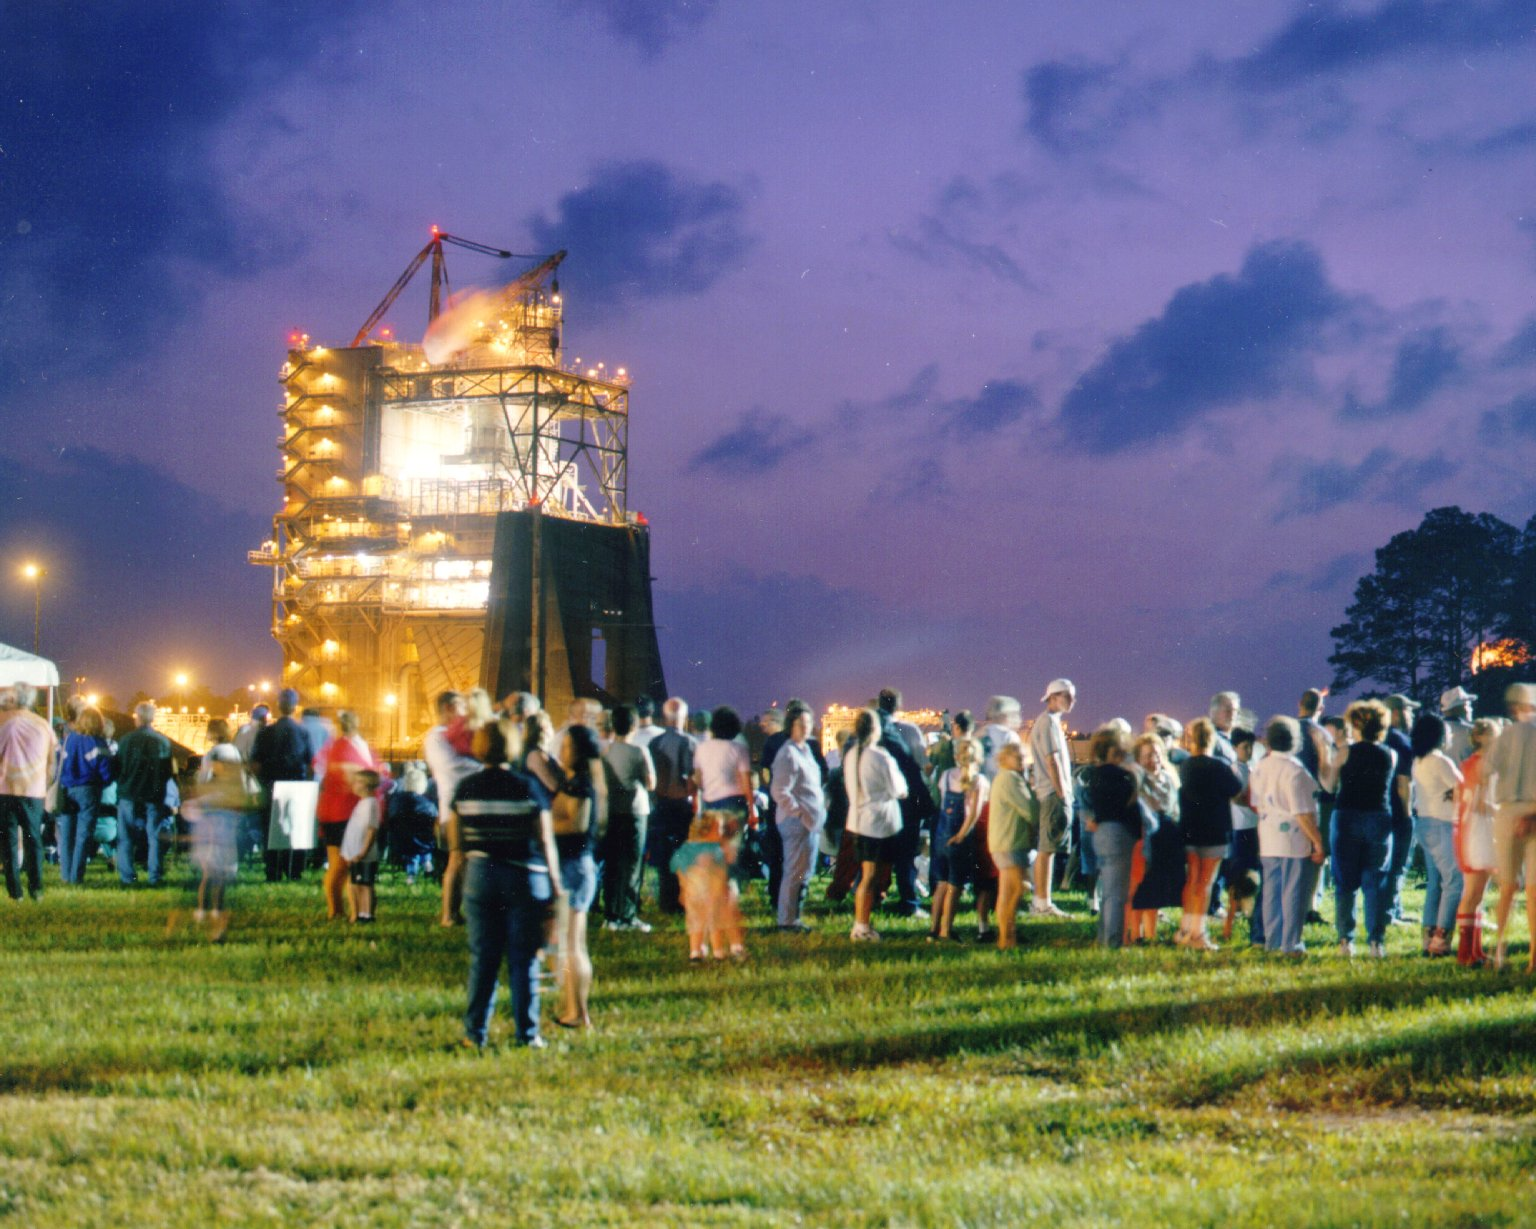 Thousands gather to watch a Space Shuttle Main Engine Test